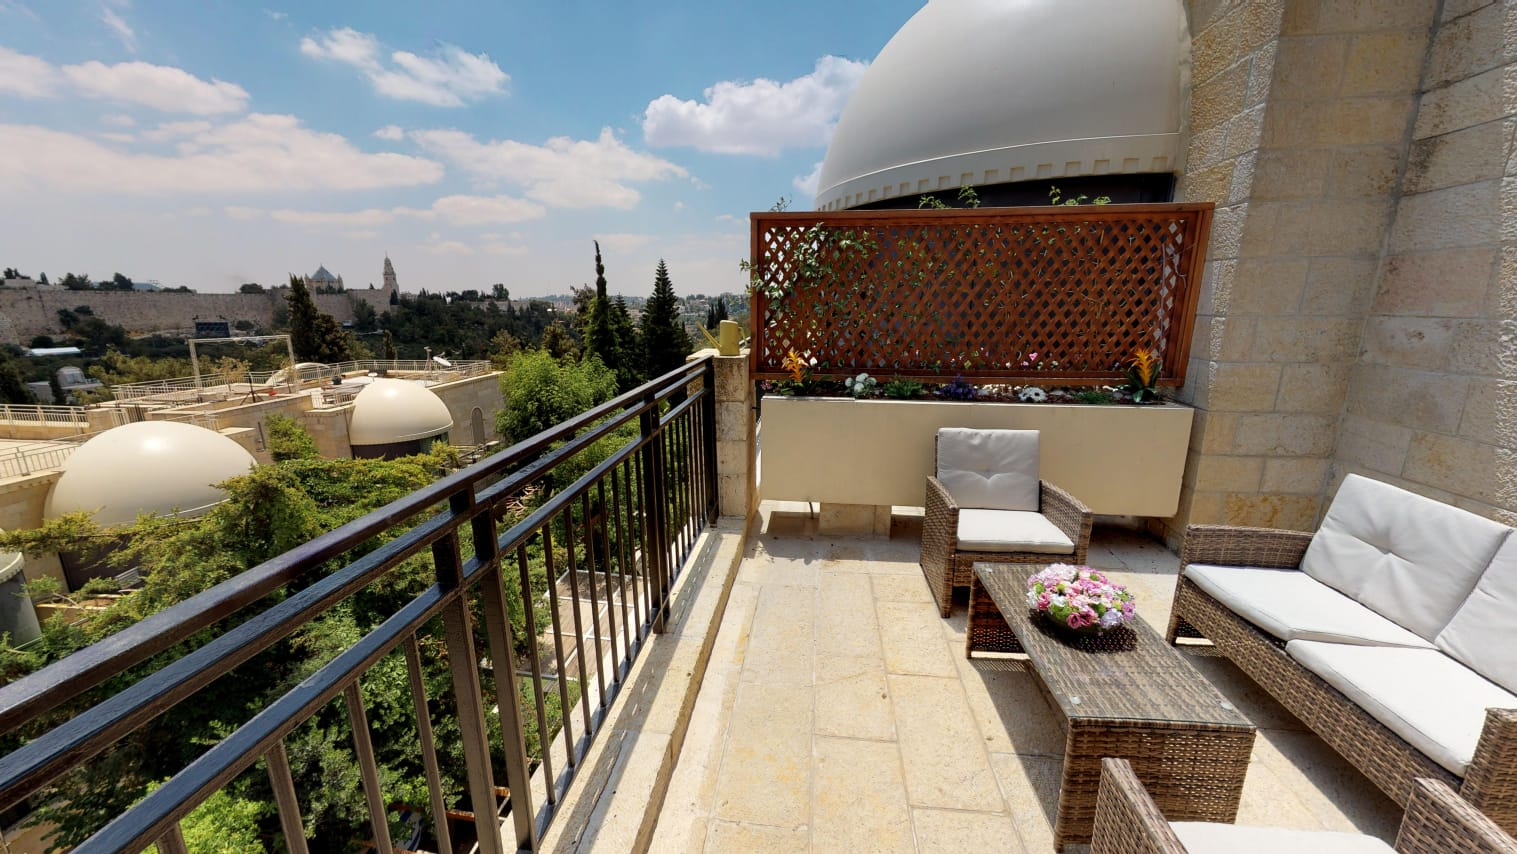 3.Old City views Luxury Mamilla 3 BR image 2